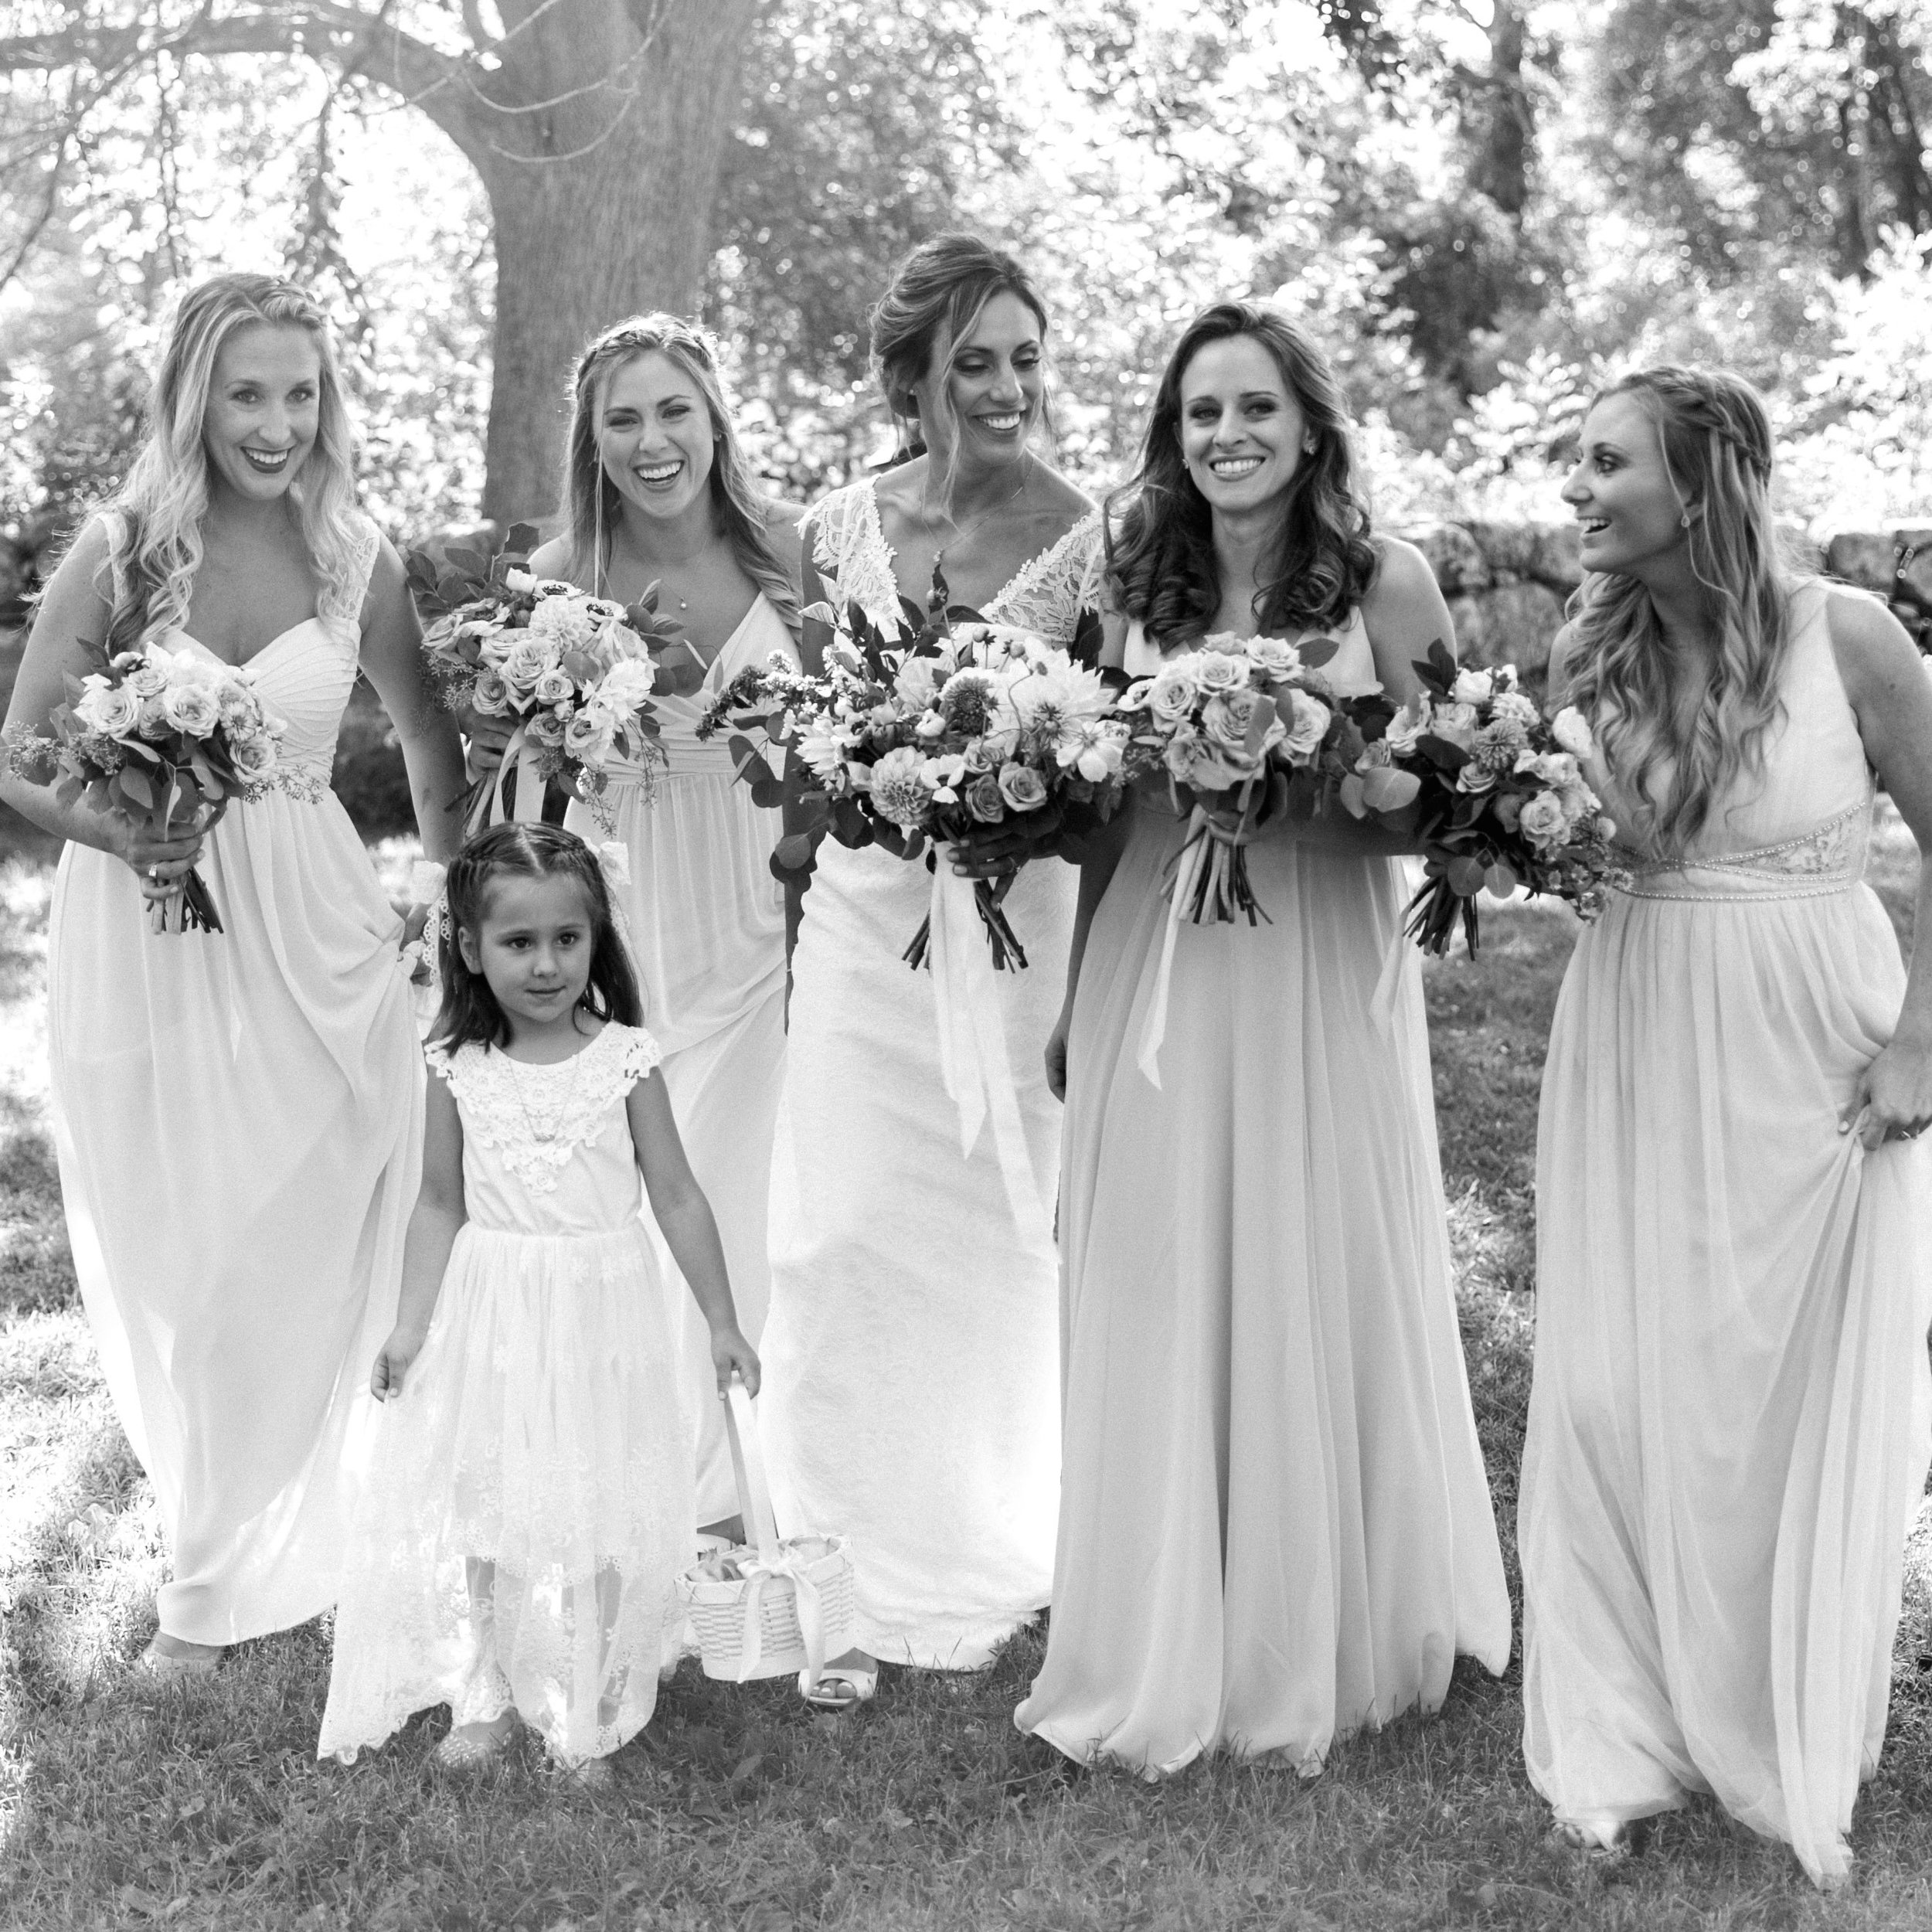 Flower Girl's Hairstyling & Makeup - We give the younger girls a special beauty treatment of their own. Sweet and secure hairstyling and simple makeup of a little shimmer, blush and gloss helps these little ladies feel beautiful for their own walk down the aisle.